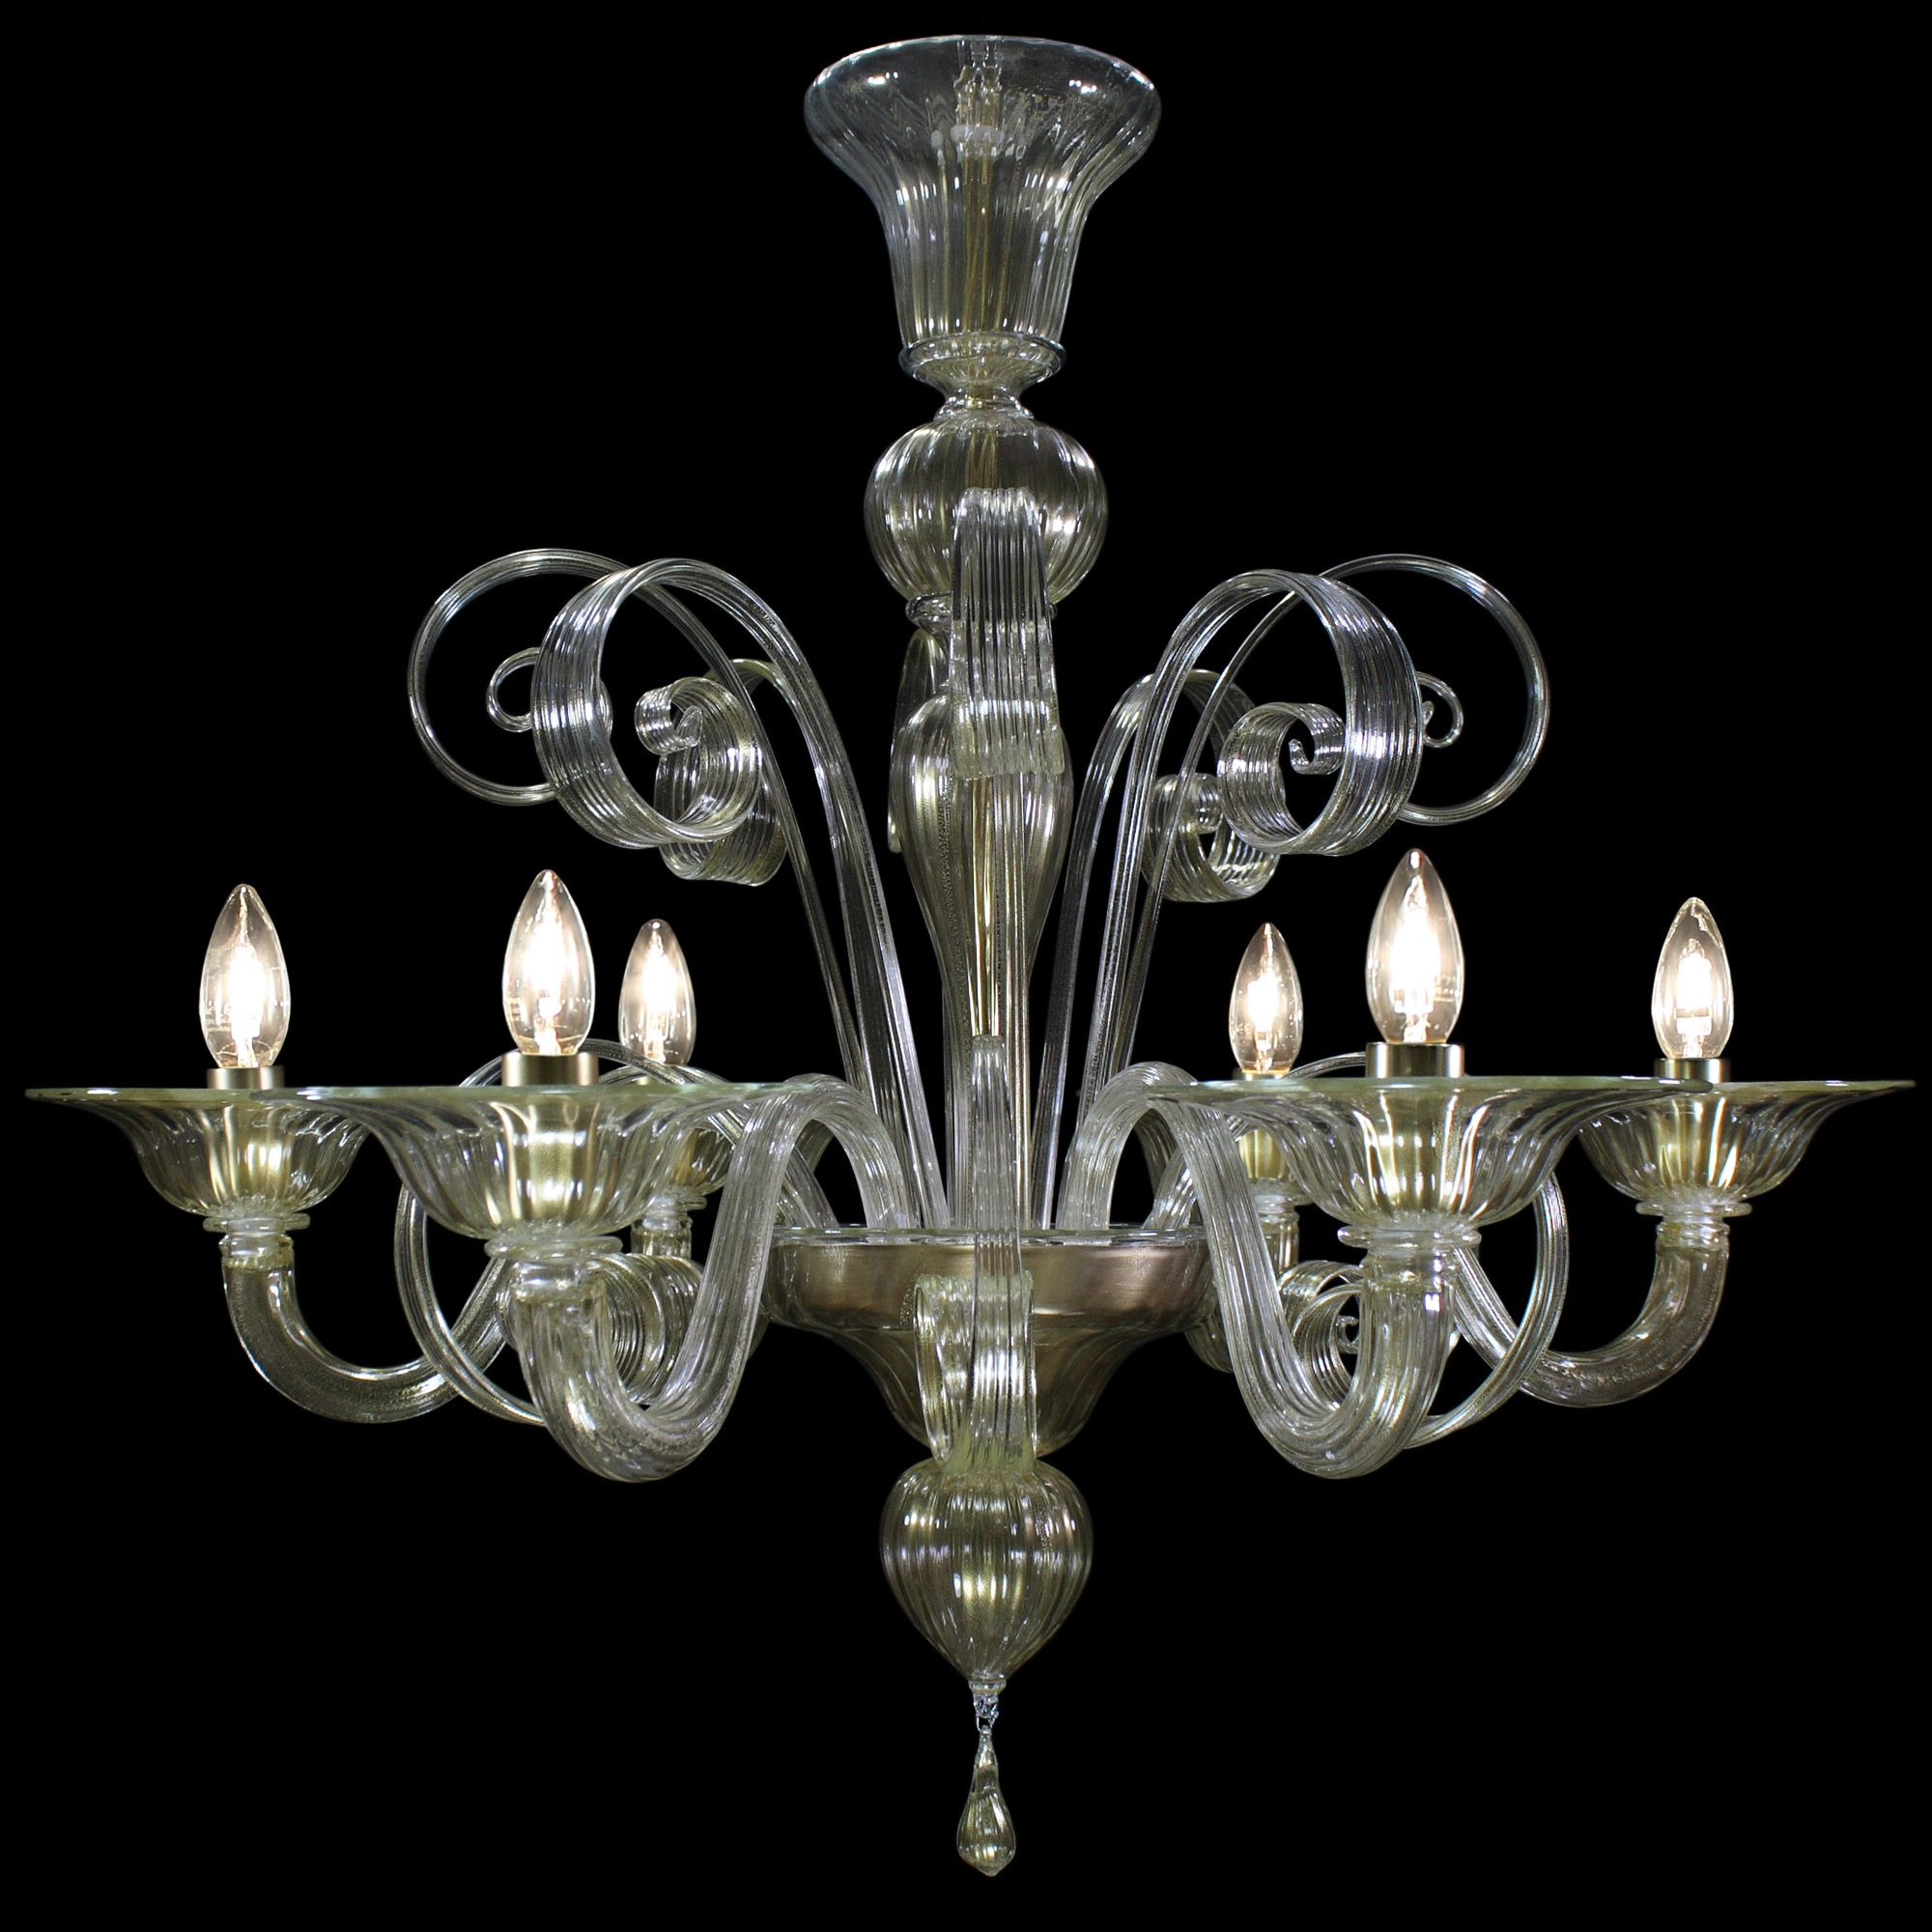 Venetian glass chandelier 5 lights in crystall and gold 24carats